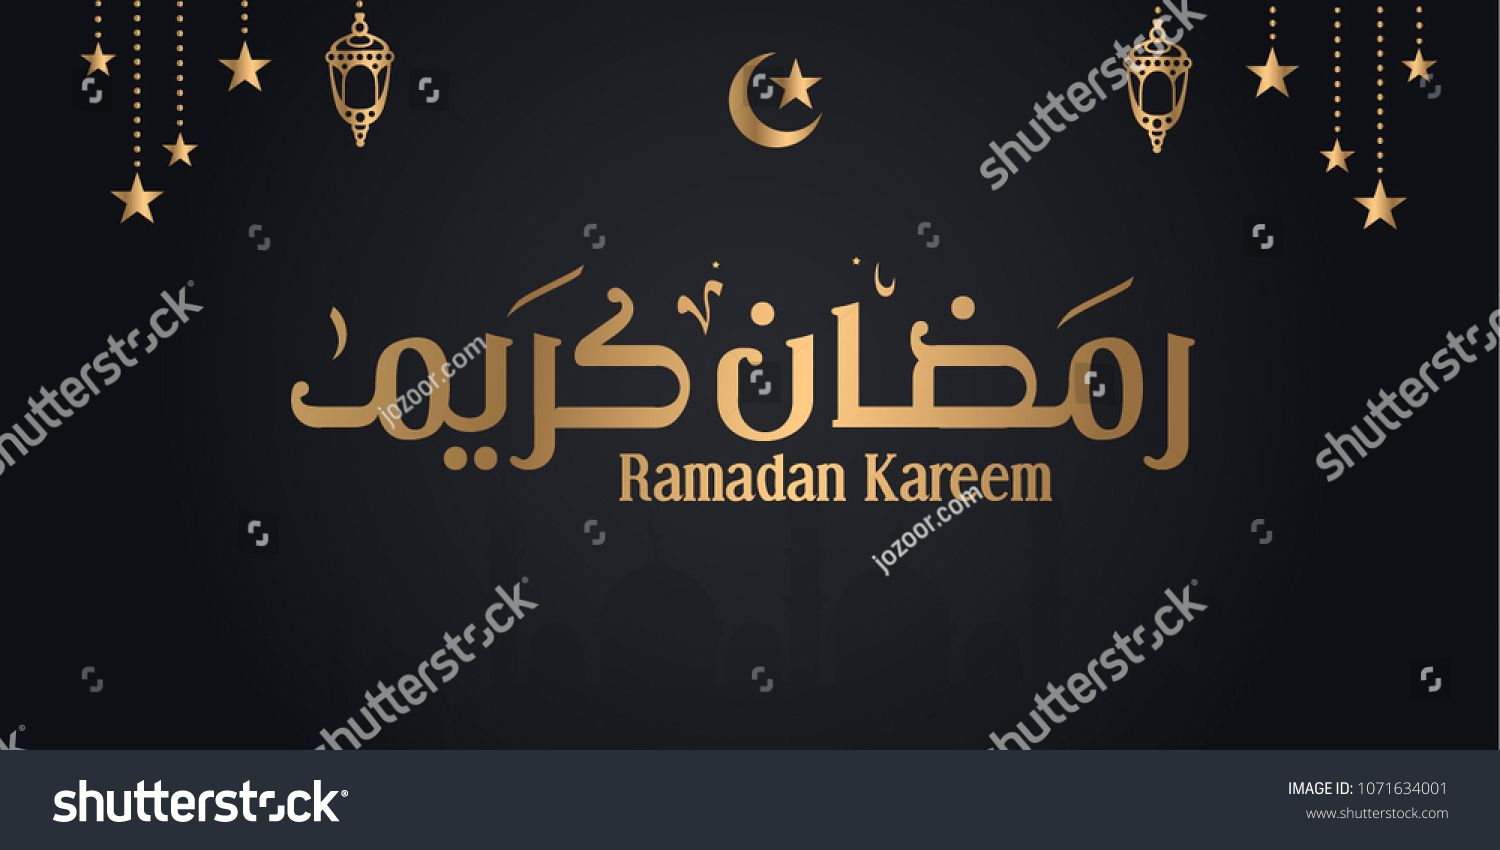 Ramadan kareem greeting card ramadan mubarak translated happy and ramadan kareem greeting card ramadan mubarak translated happy and holy ramadan month m4hsunfo